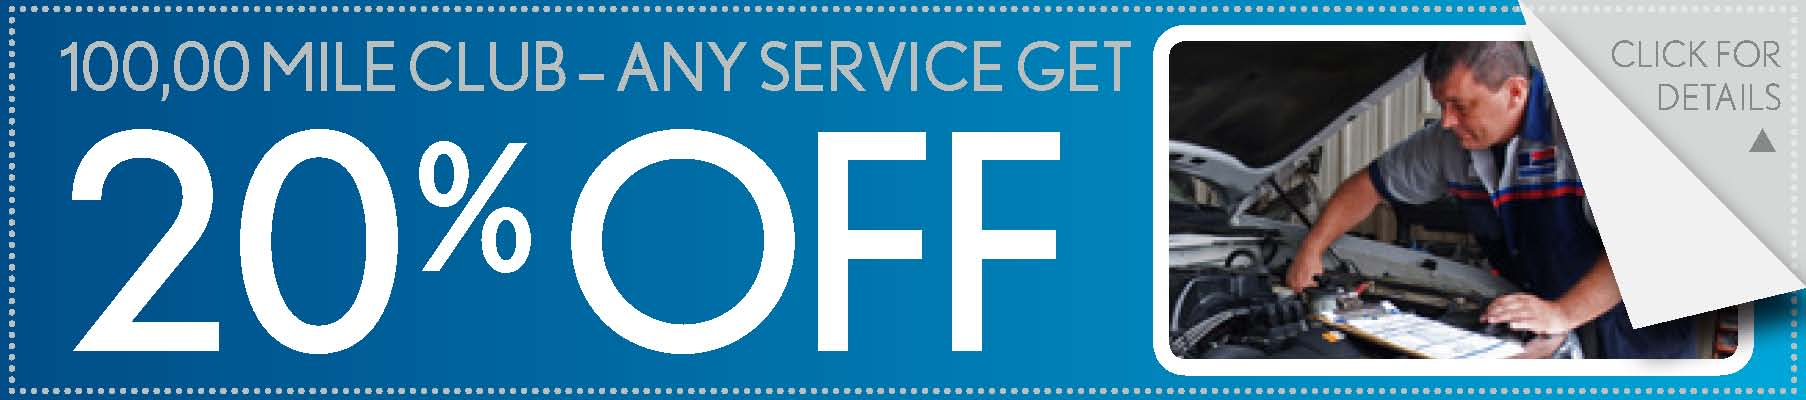 20% Off Any Service Coupon, Springfield, MO